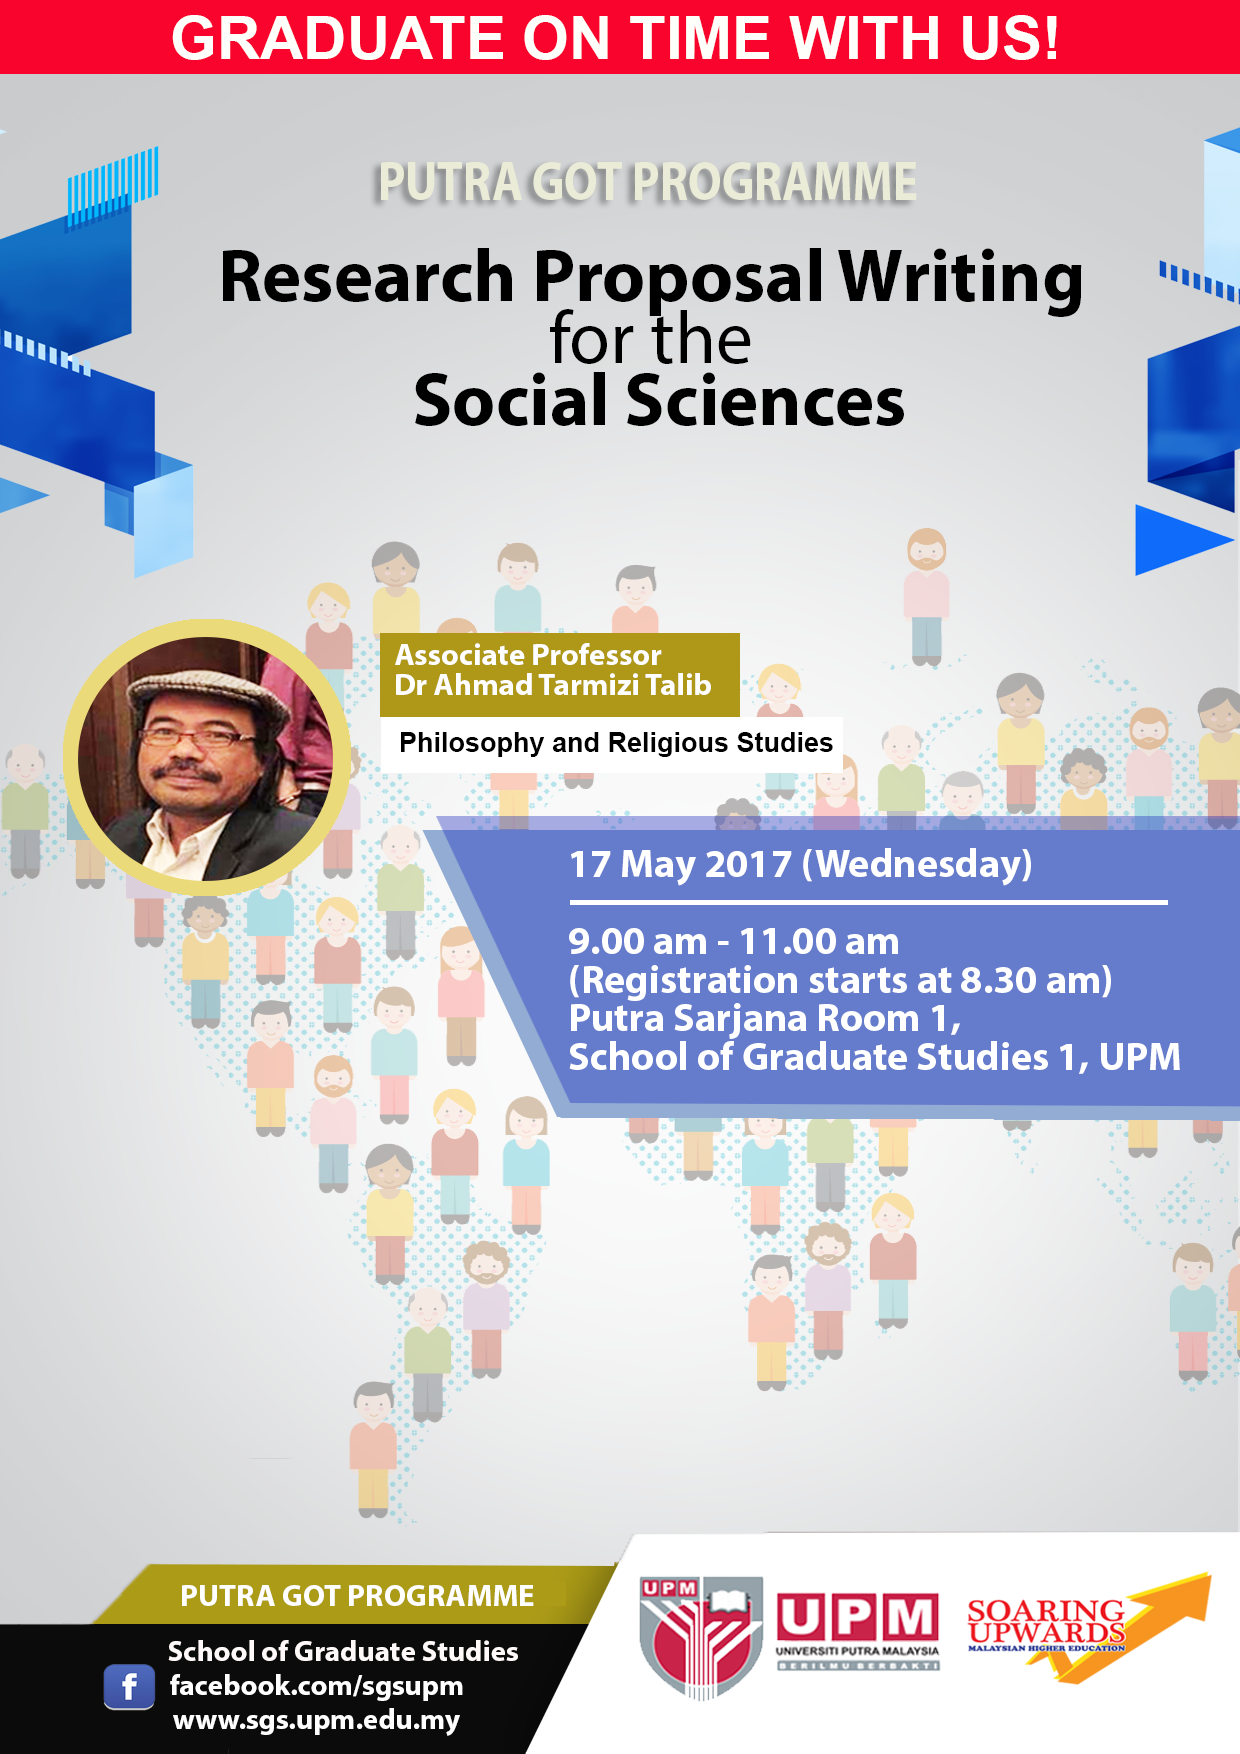 Research proposal writing for the social sciences seminar research proposal writing for the social sciences seminar pinterest proposal writing activities and school toneelgroepblik Choice Image